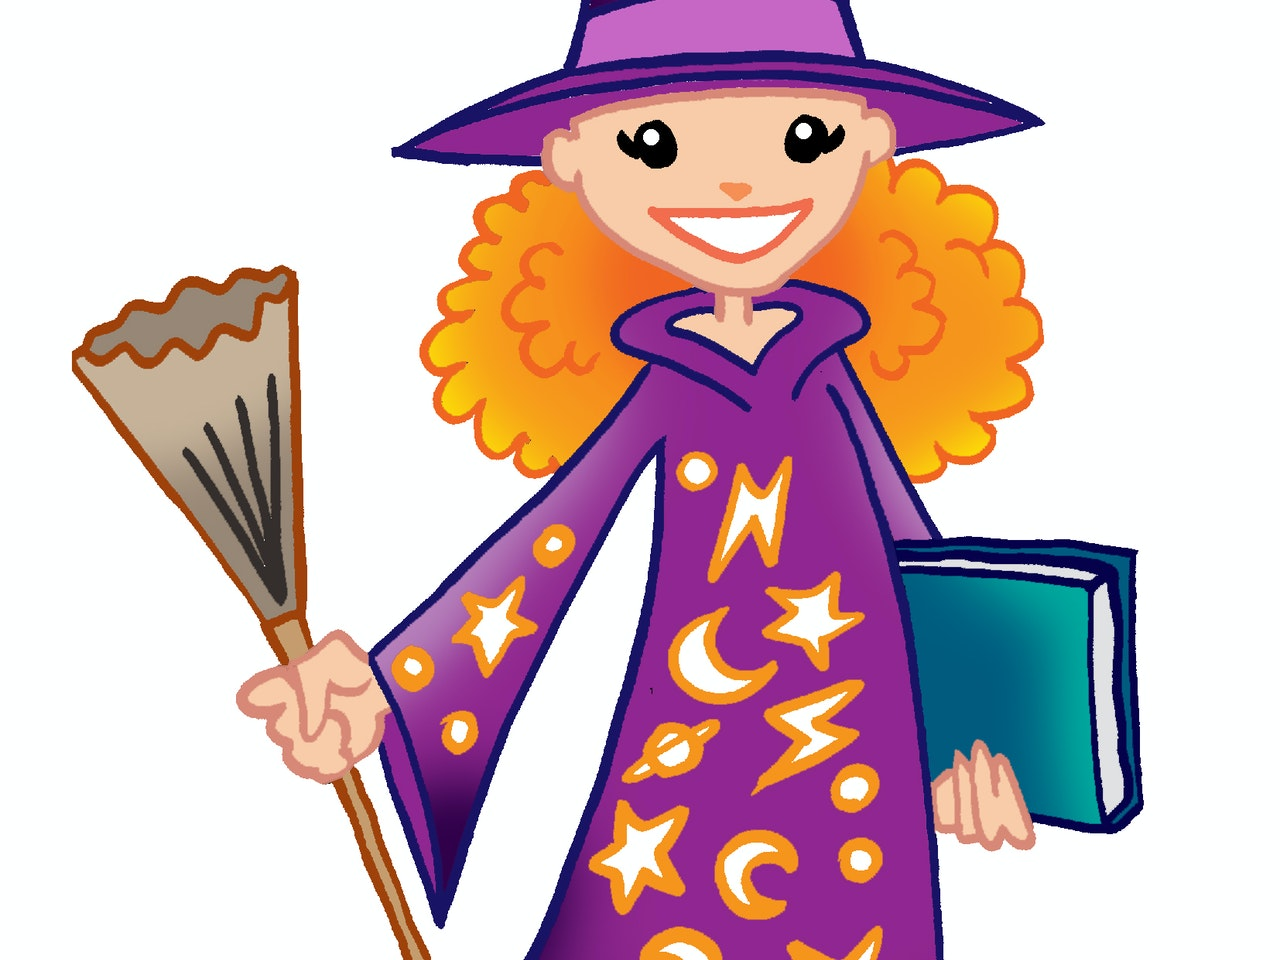 witch wizard magic teen girl spells broom harry potter illustration animation  humorous comical colourful graphic cartoon manga anime publishing happy